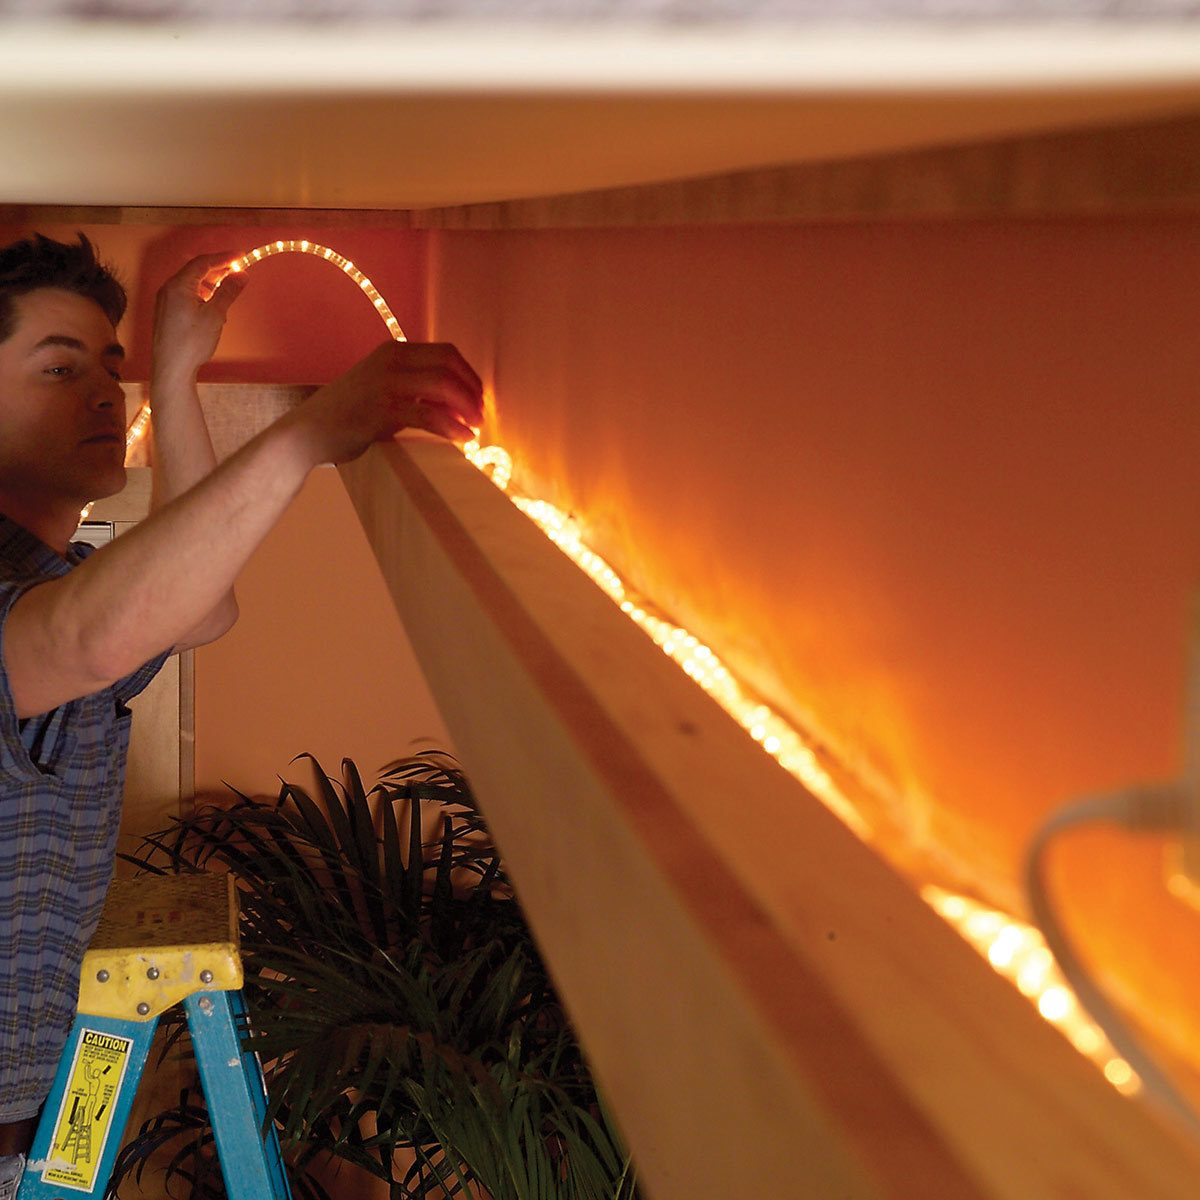 Bored with Overhead Lighting? Try Copper LEDs